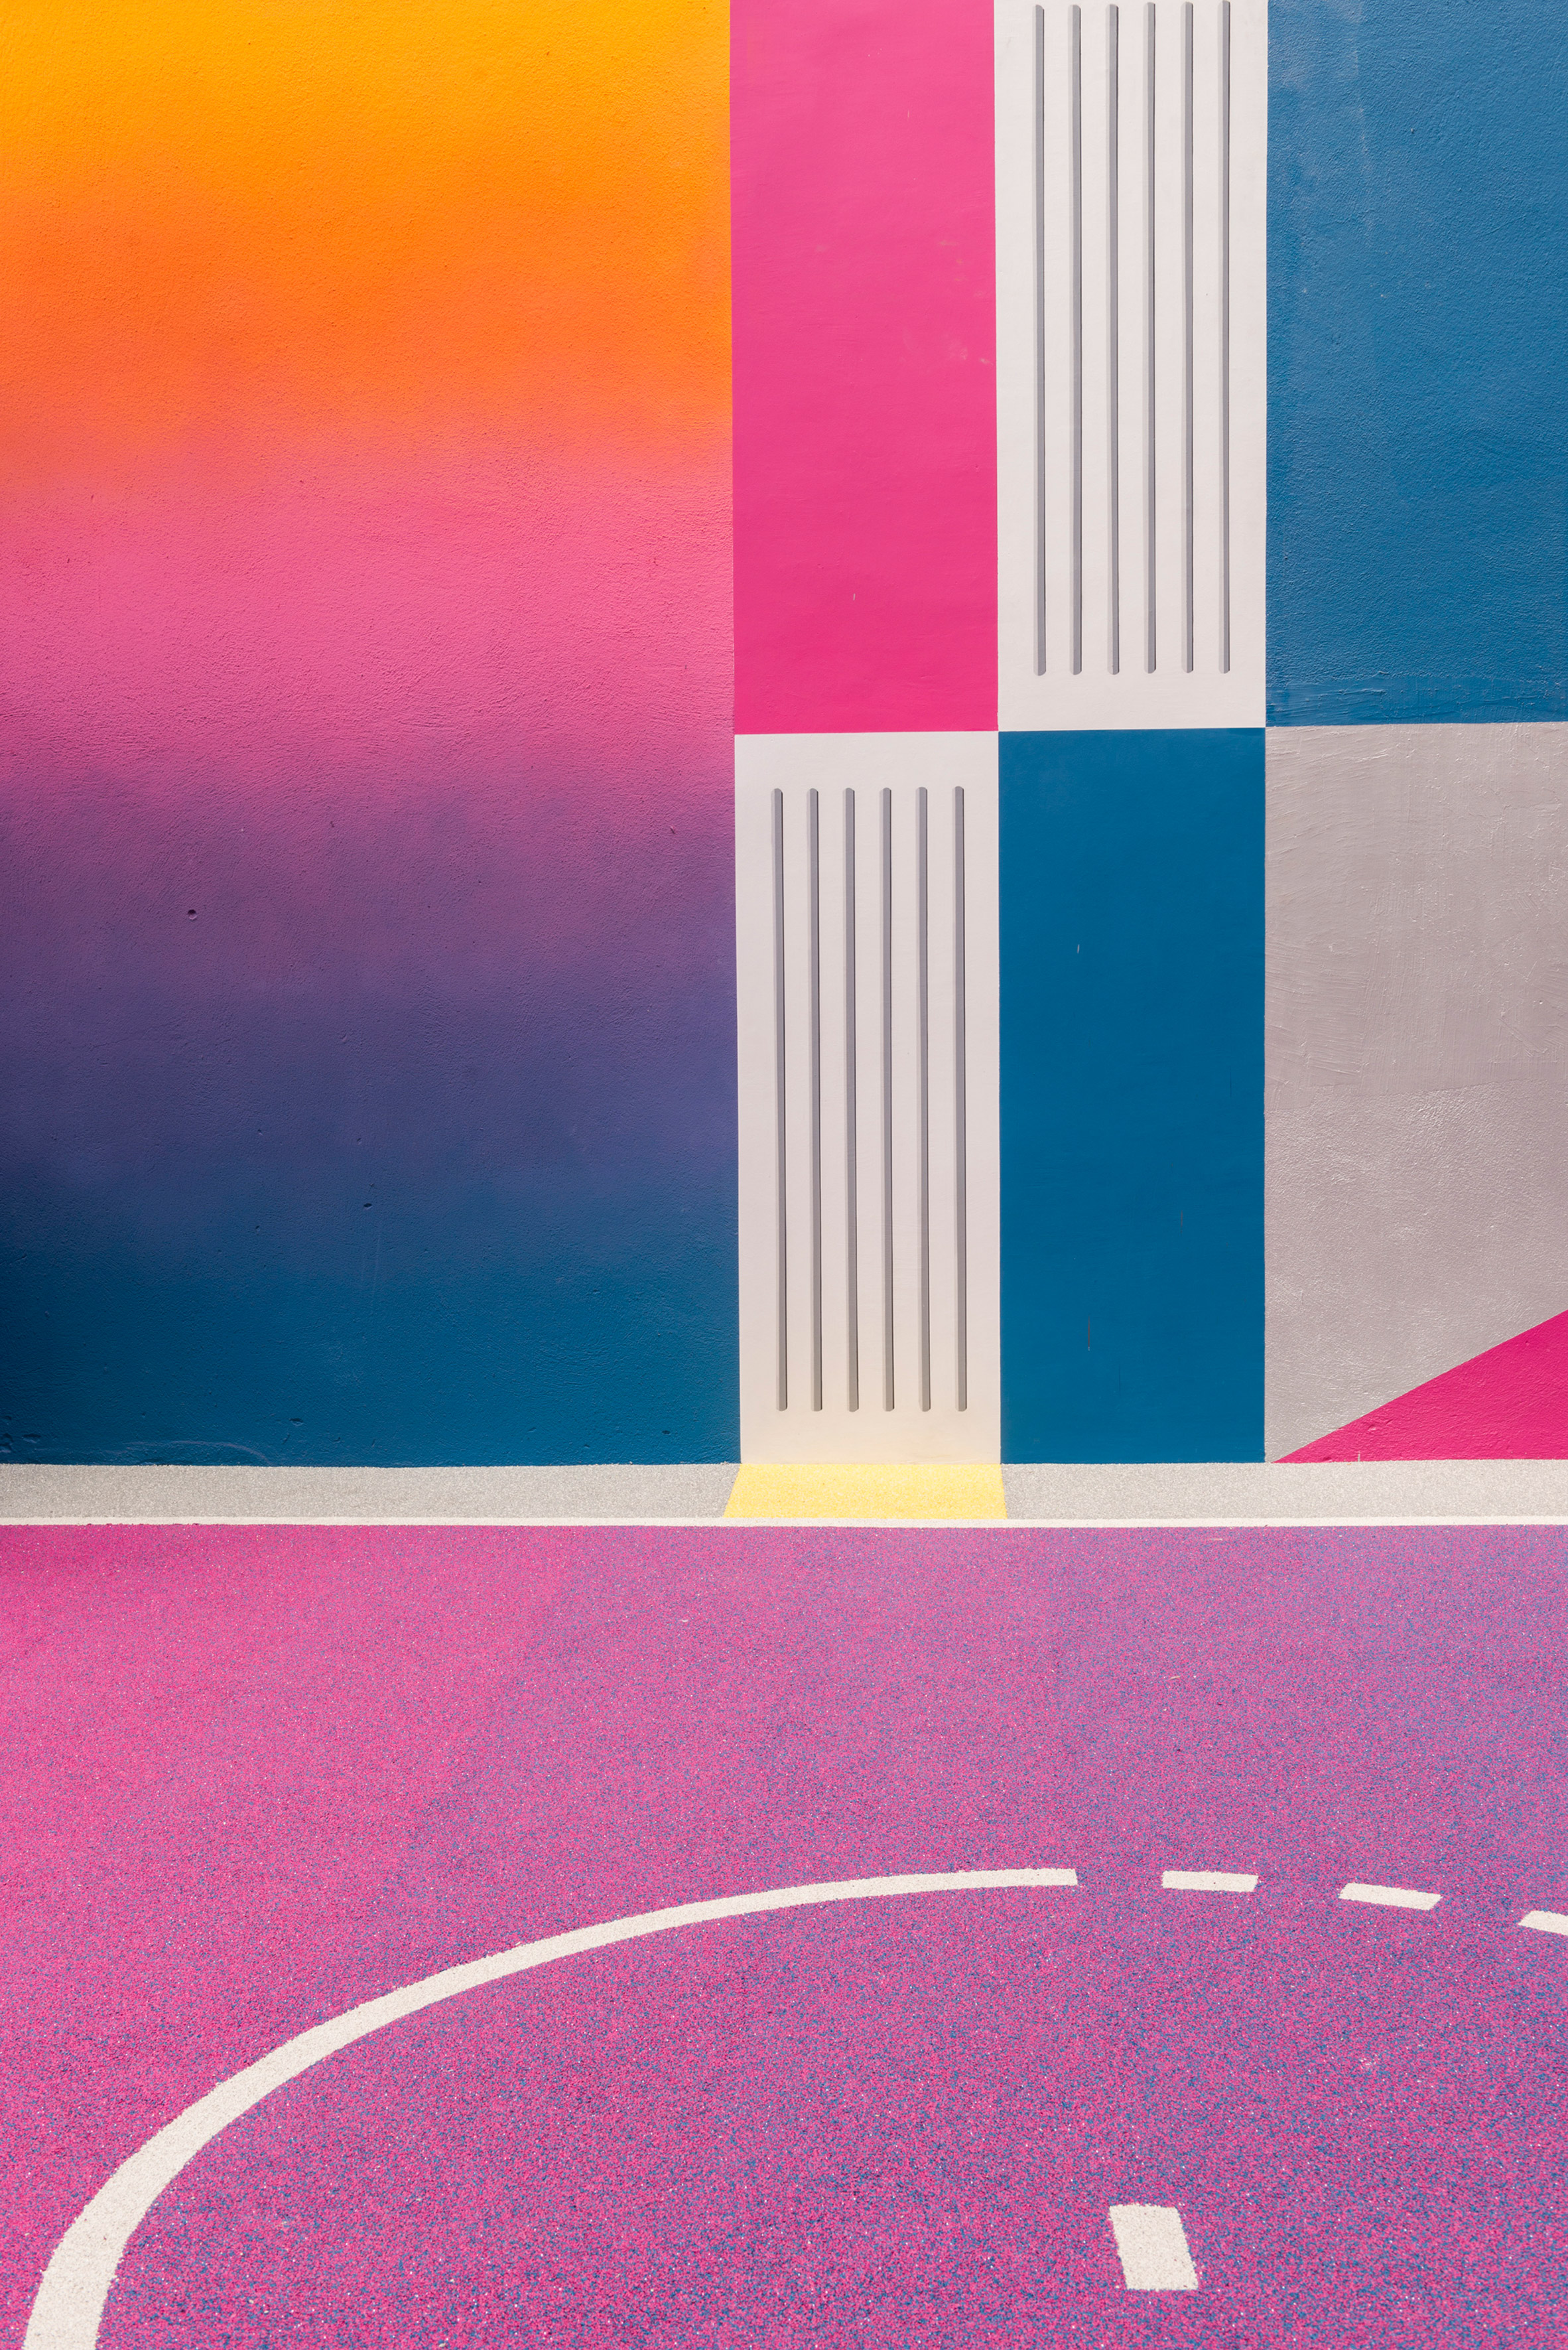 basket-court-pigalle-studio-architecture-public-leisure-paris-france-_dezeen_2364_col_1.jpg